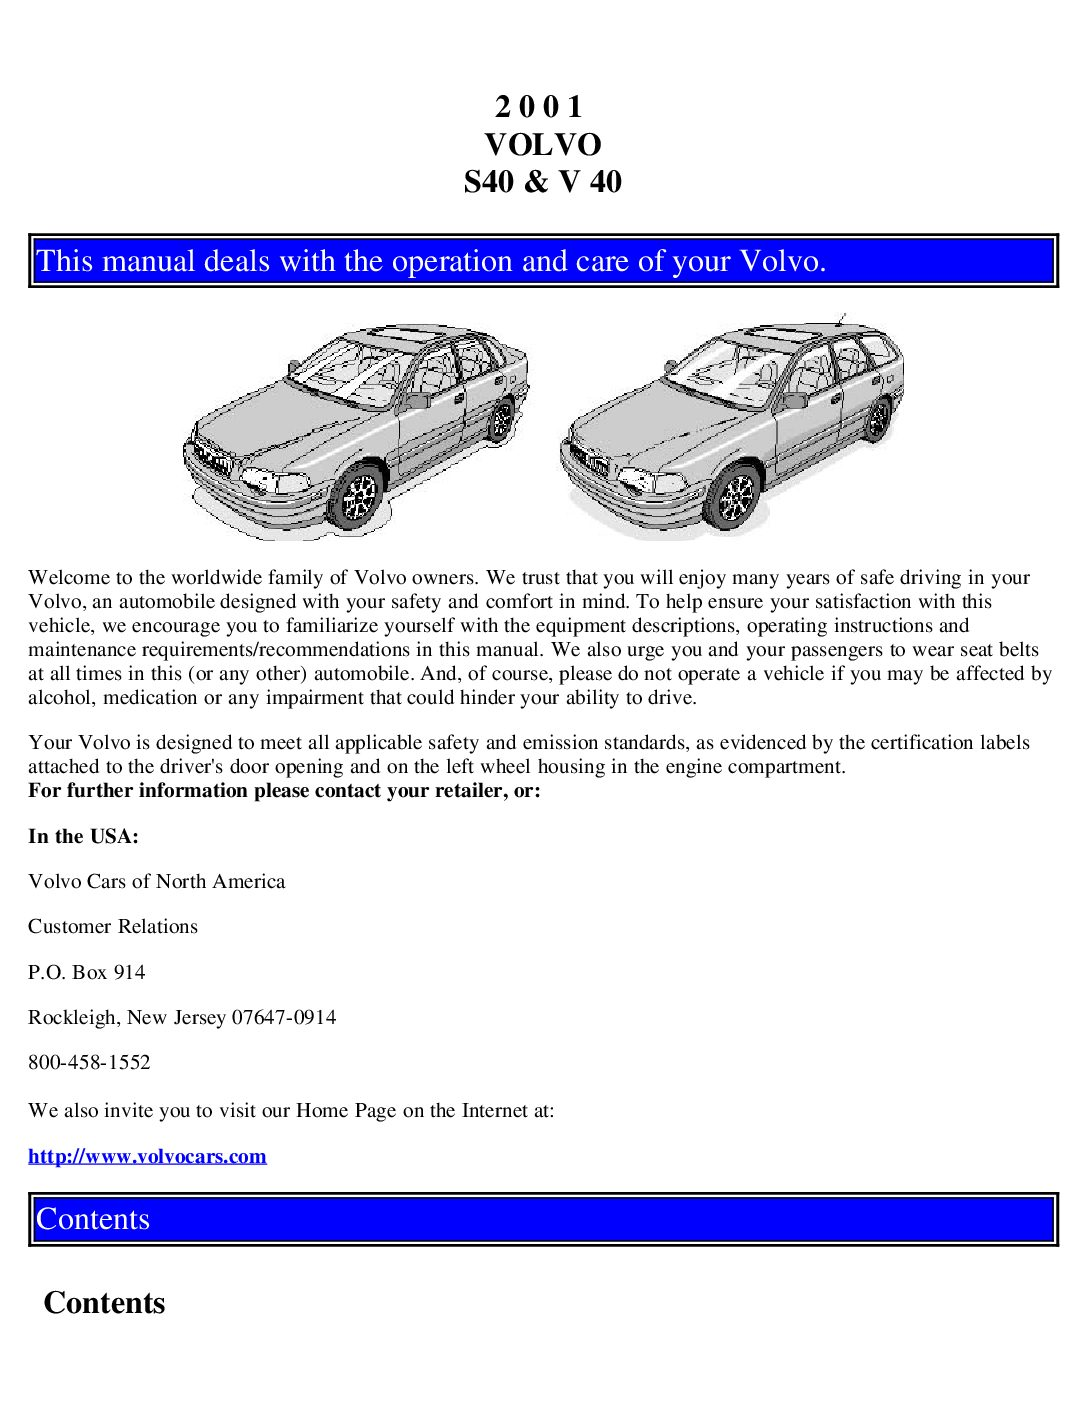 2001 volvo s40 v40 owners manual just give me the damn manual rh justgivemethedamnmanual com Volvo S60 2001 volvo s40 repair manual